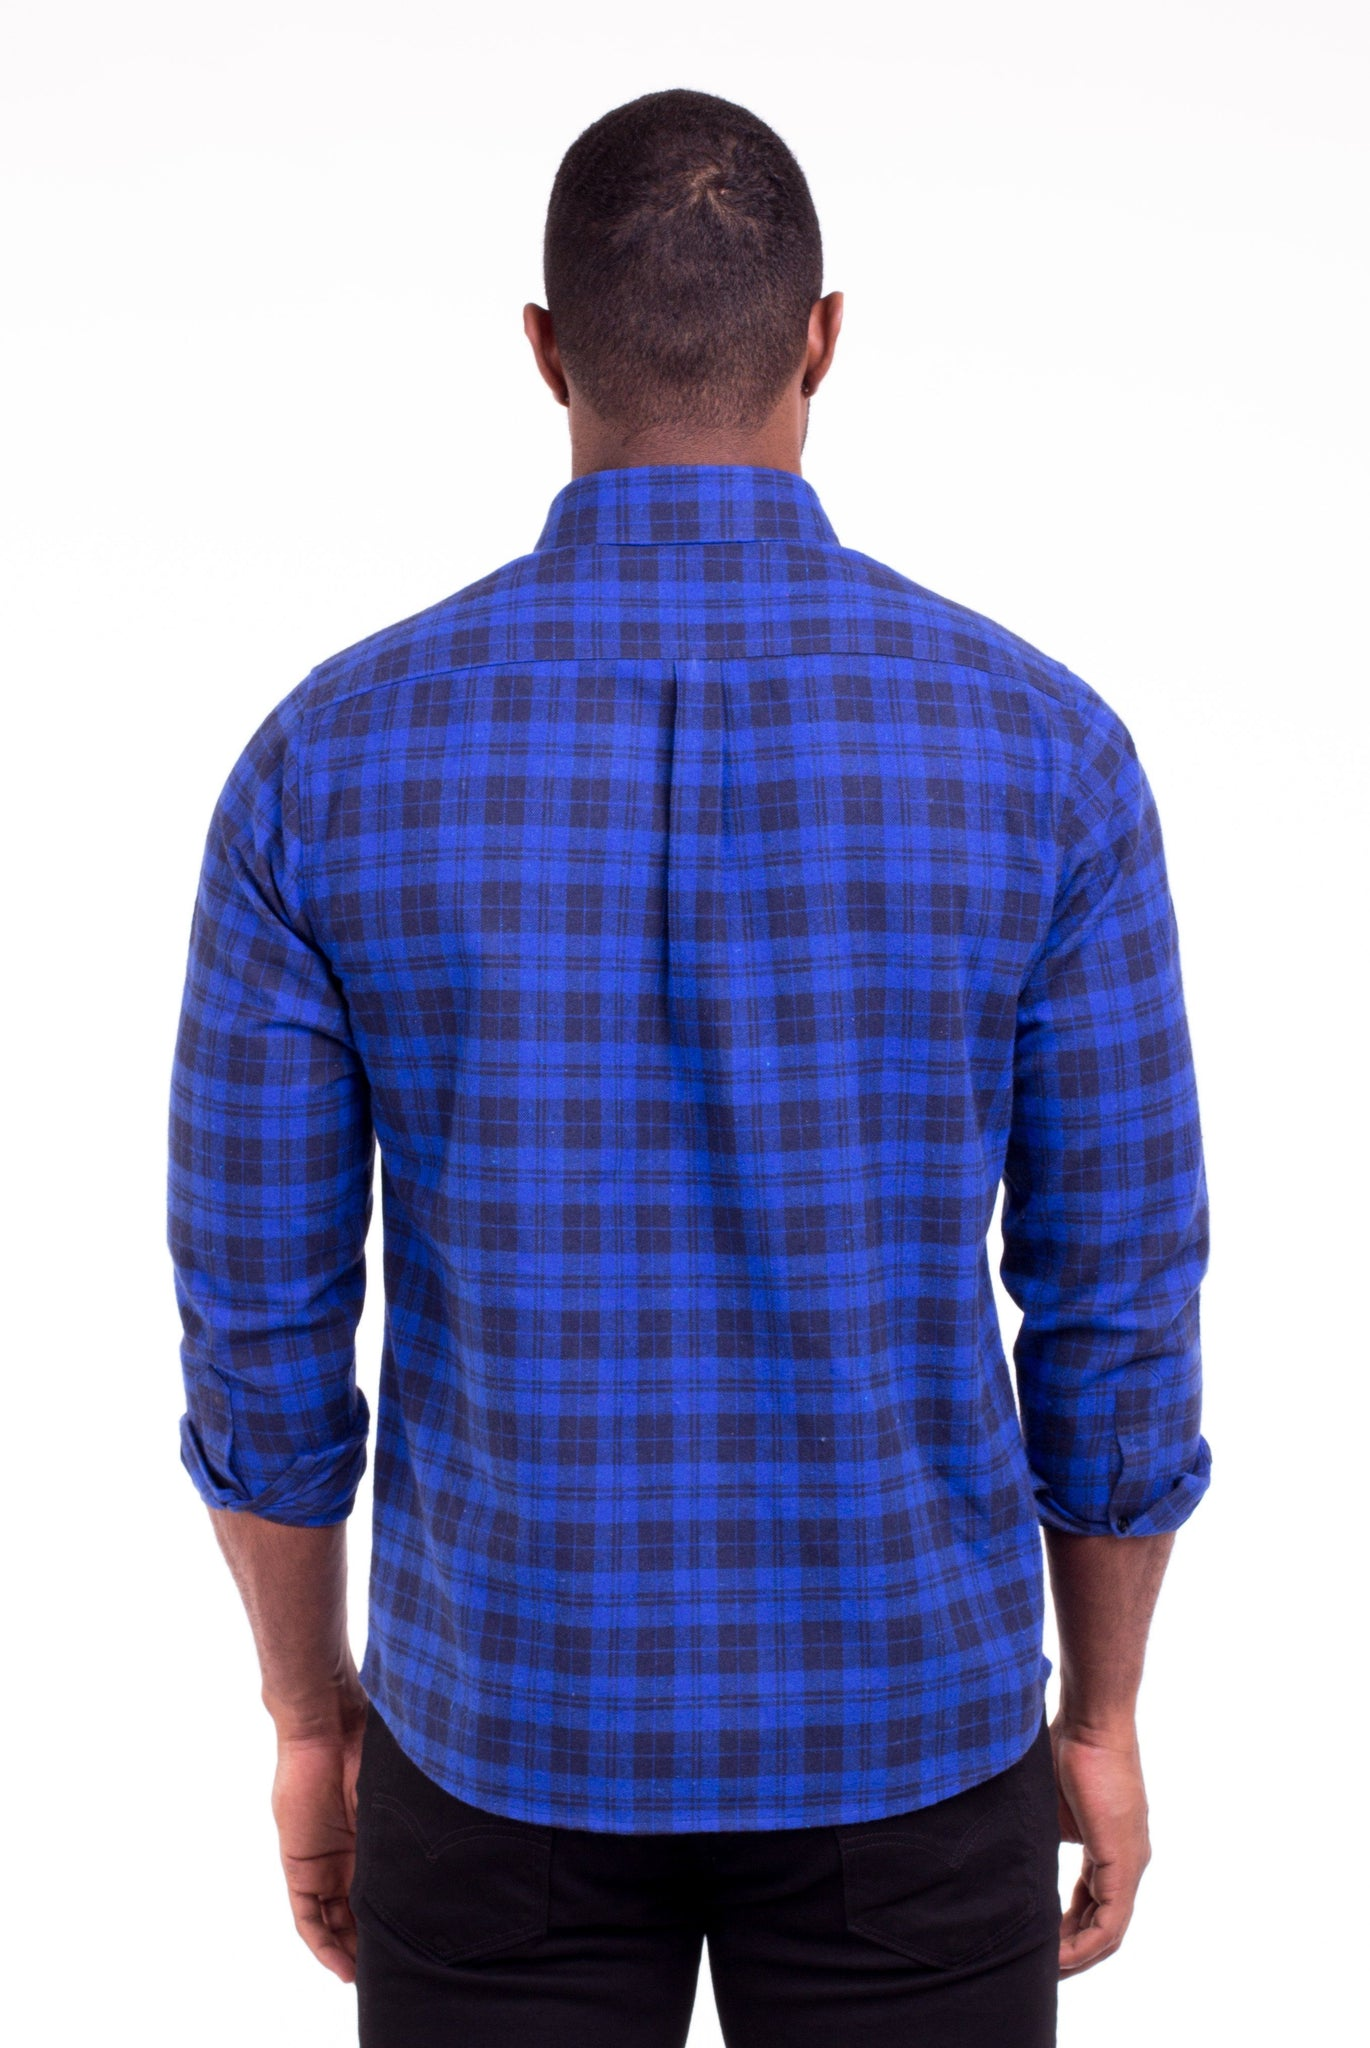 JOHNNY BLUE/BLACK PLAID FLANNEL SHIRT | Poor Little Rich Boy Clothing